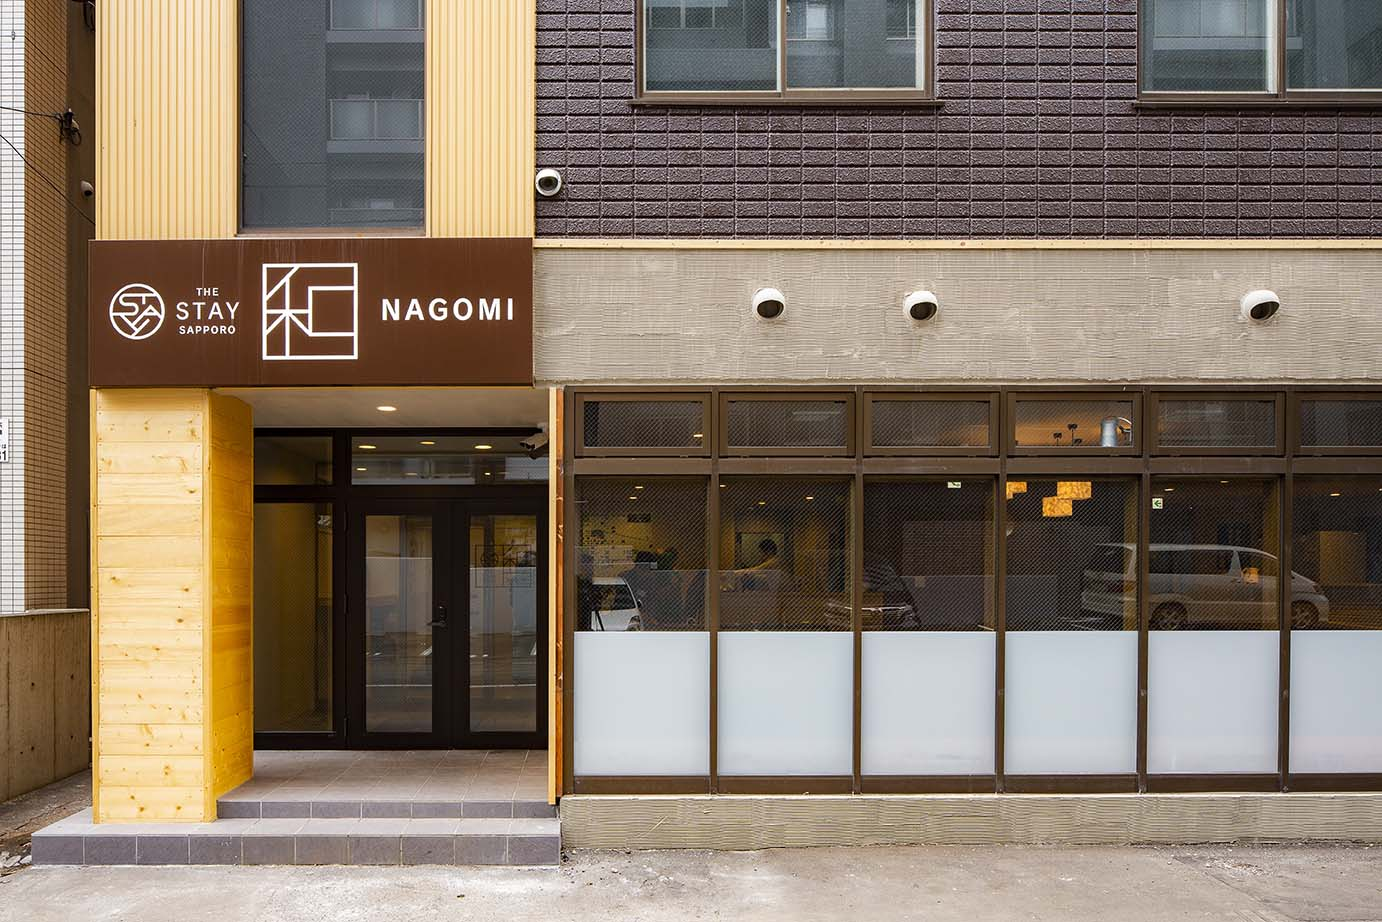 THE STAY SAPPORO 和ーNAGOMIー